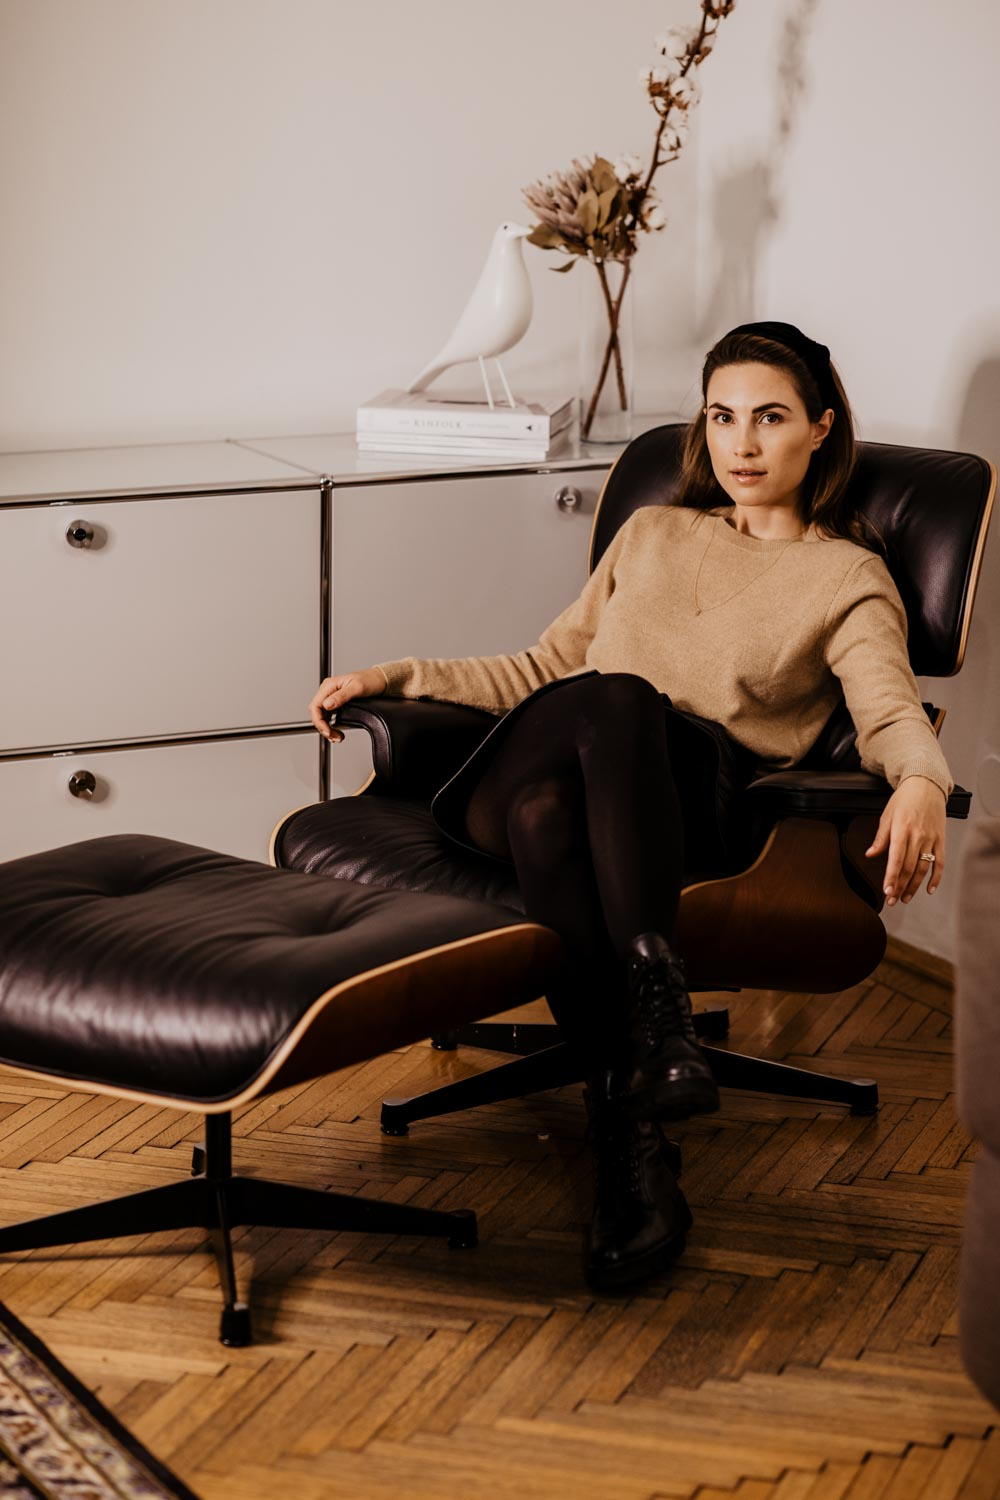 vOutfit: Office Days - Leather Skirt | You Rock My Life